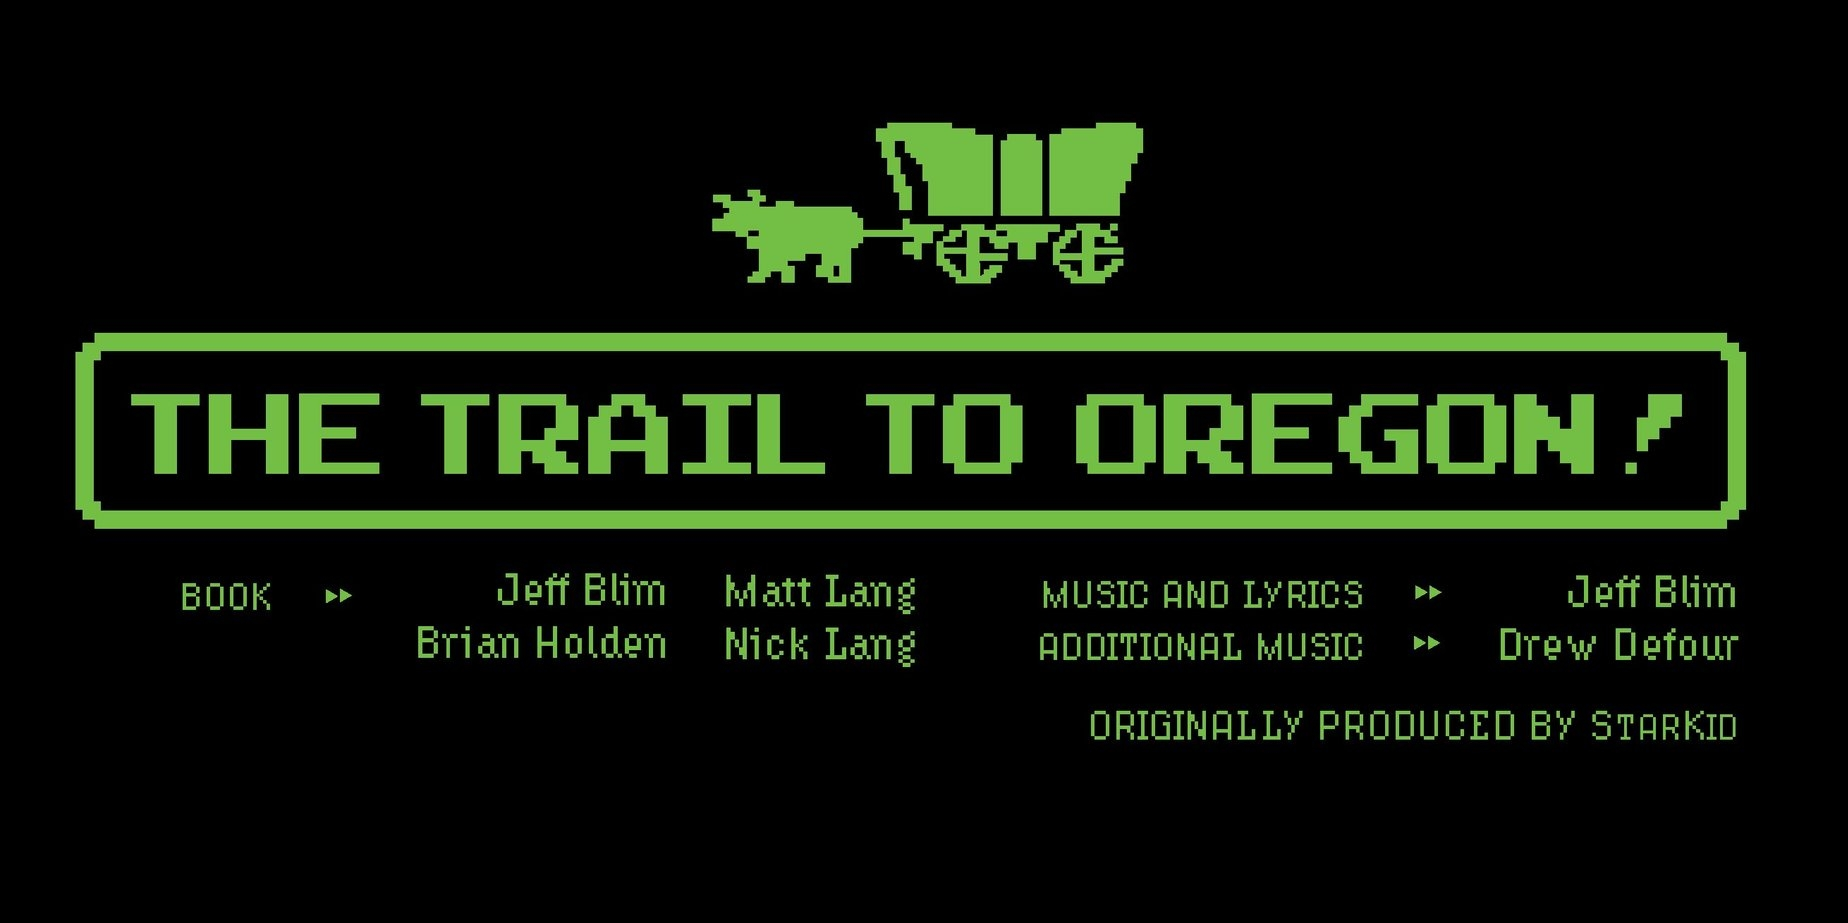 The Trail To Oregon! - Directed by Katie KellerJanuary 24-26, 2019 @ 7:30pm, January 27, 2019 @ 2:00pmMarshall Performing Arts Center - Dudley Experimental TheatreGeneral admission seating | $10Join our All-American family as they journey down the The Trail to Oregon! An original musical from StarKid Productions.